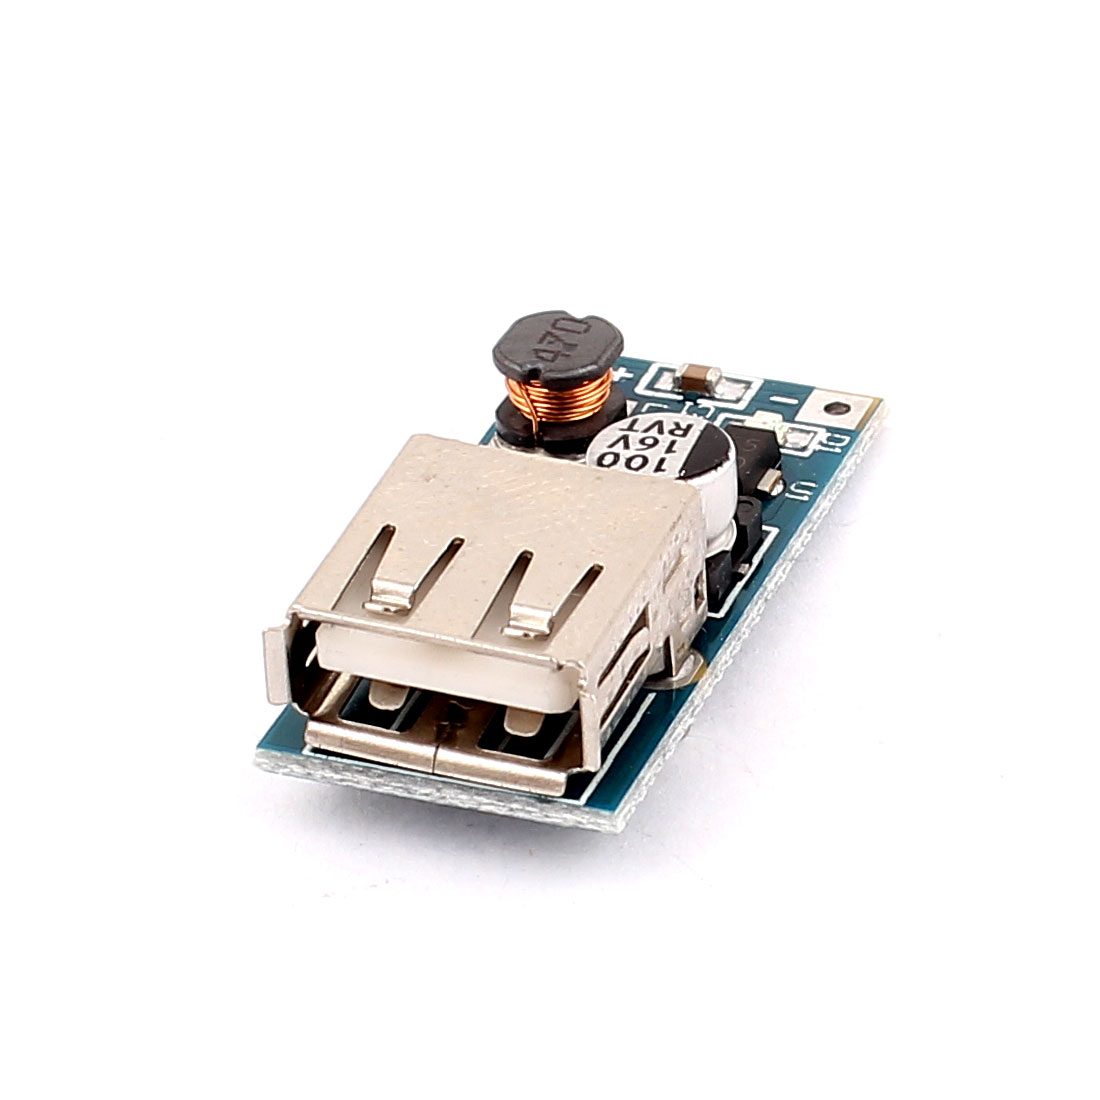 0.9-5VDC DC-DC 600mA USB Port Electronic Step-up Power Supply Module